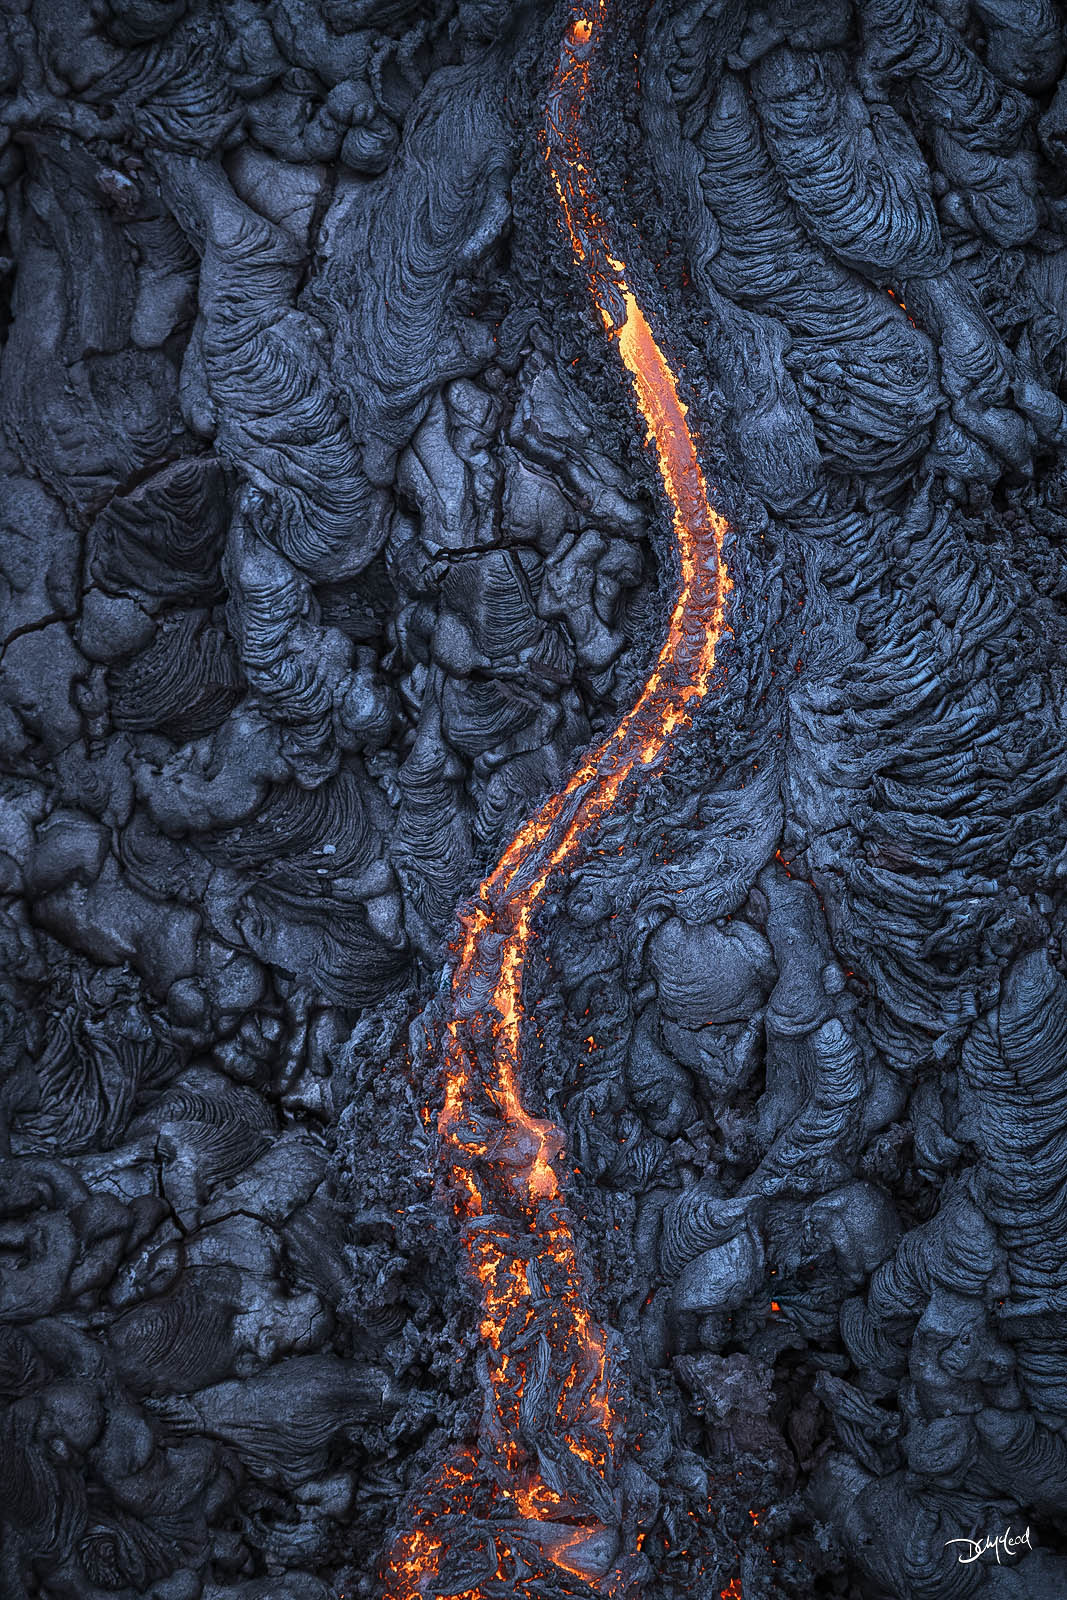 middle earth, east rift zone, hawaii, amaze, nature, dynamic, unique, textures, molten lava, mesmerizing, exciting, photo